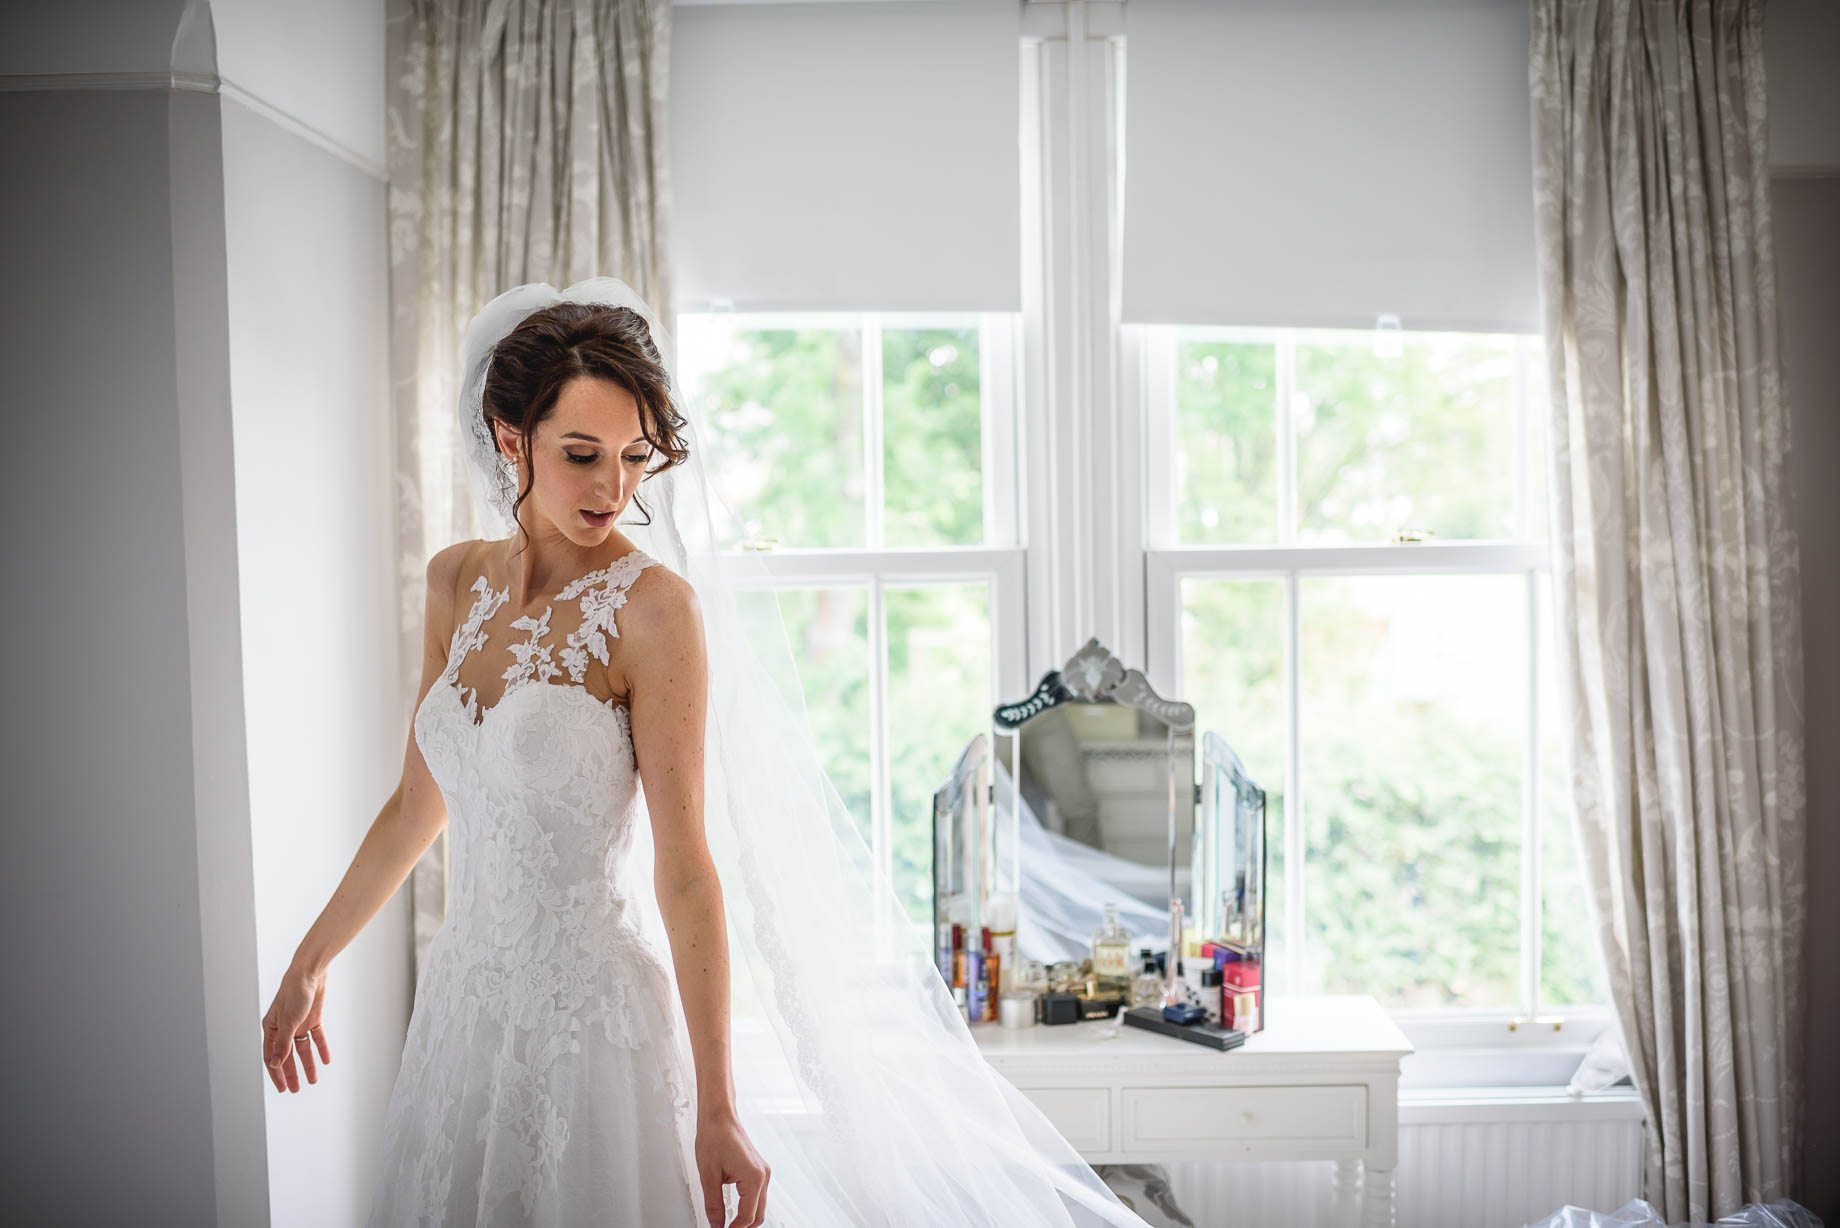 Hertfordshire wedding photography - Sarah and Stephen by Guy Collier Photography (41 of 161)